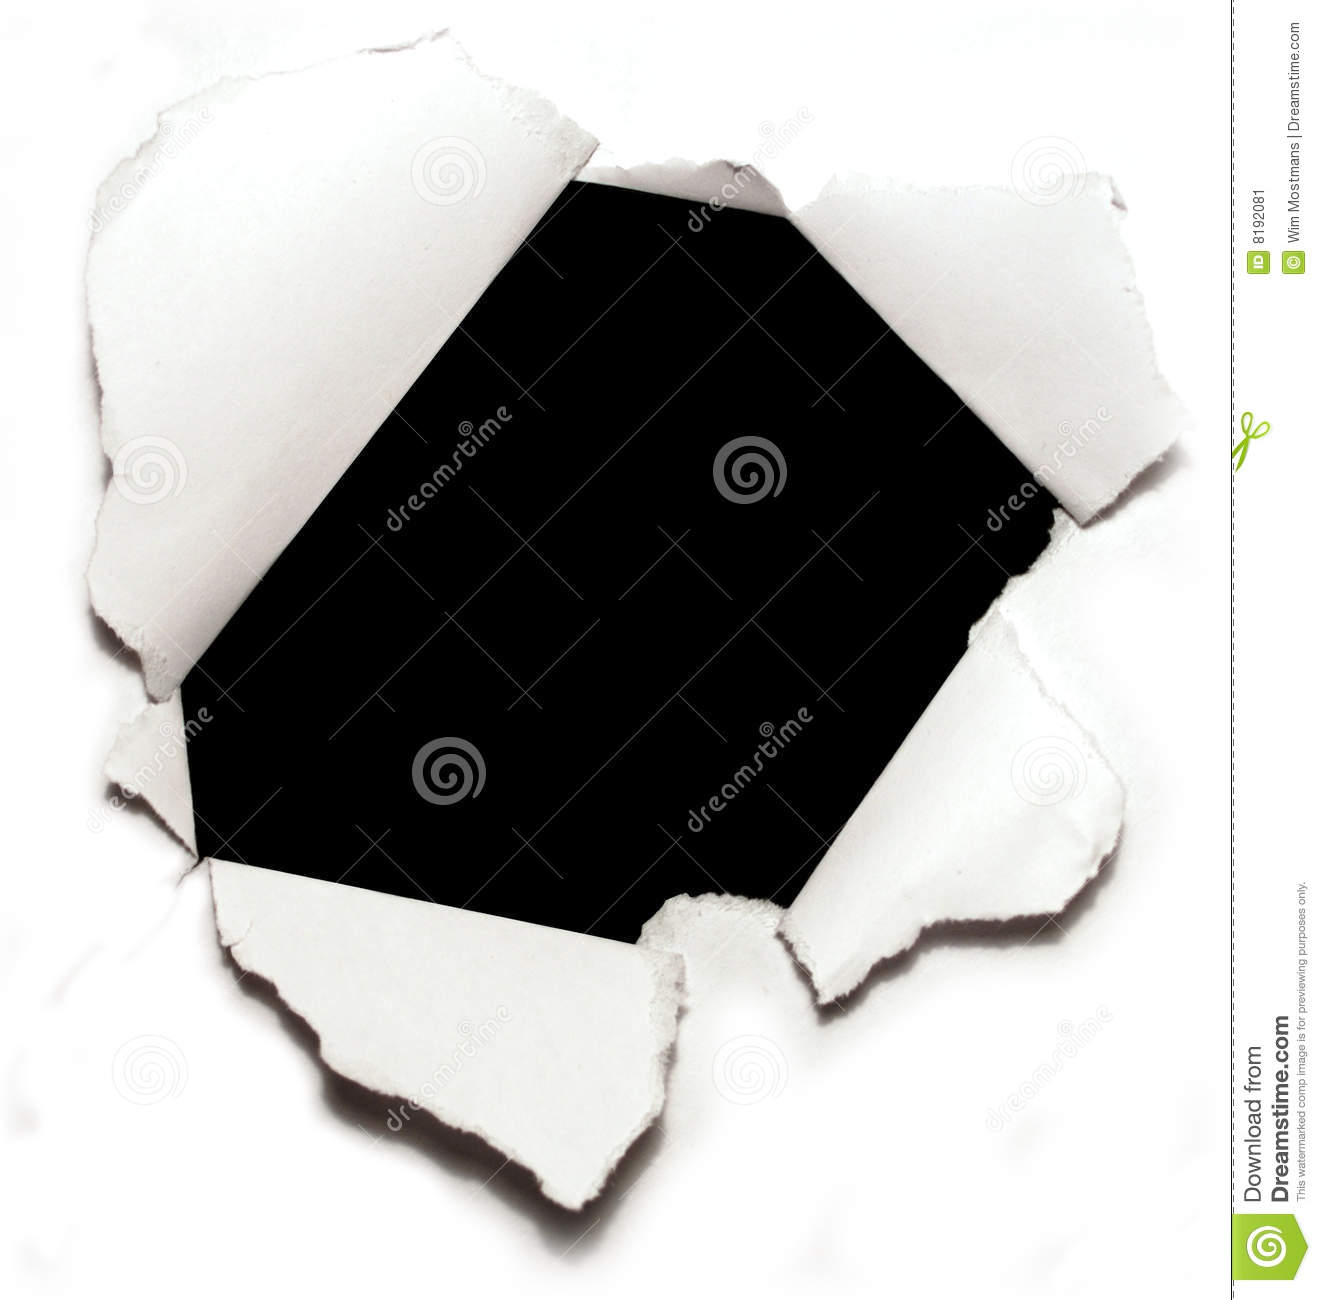 Torn Piece of Paper with Holes